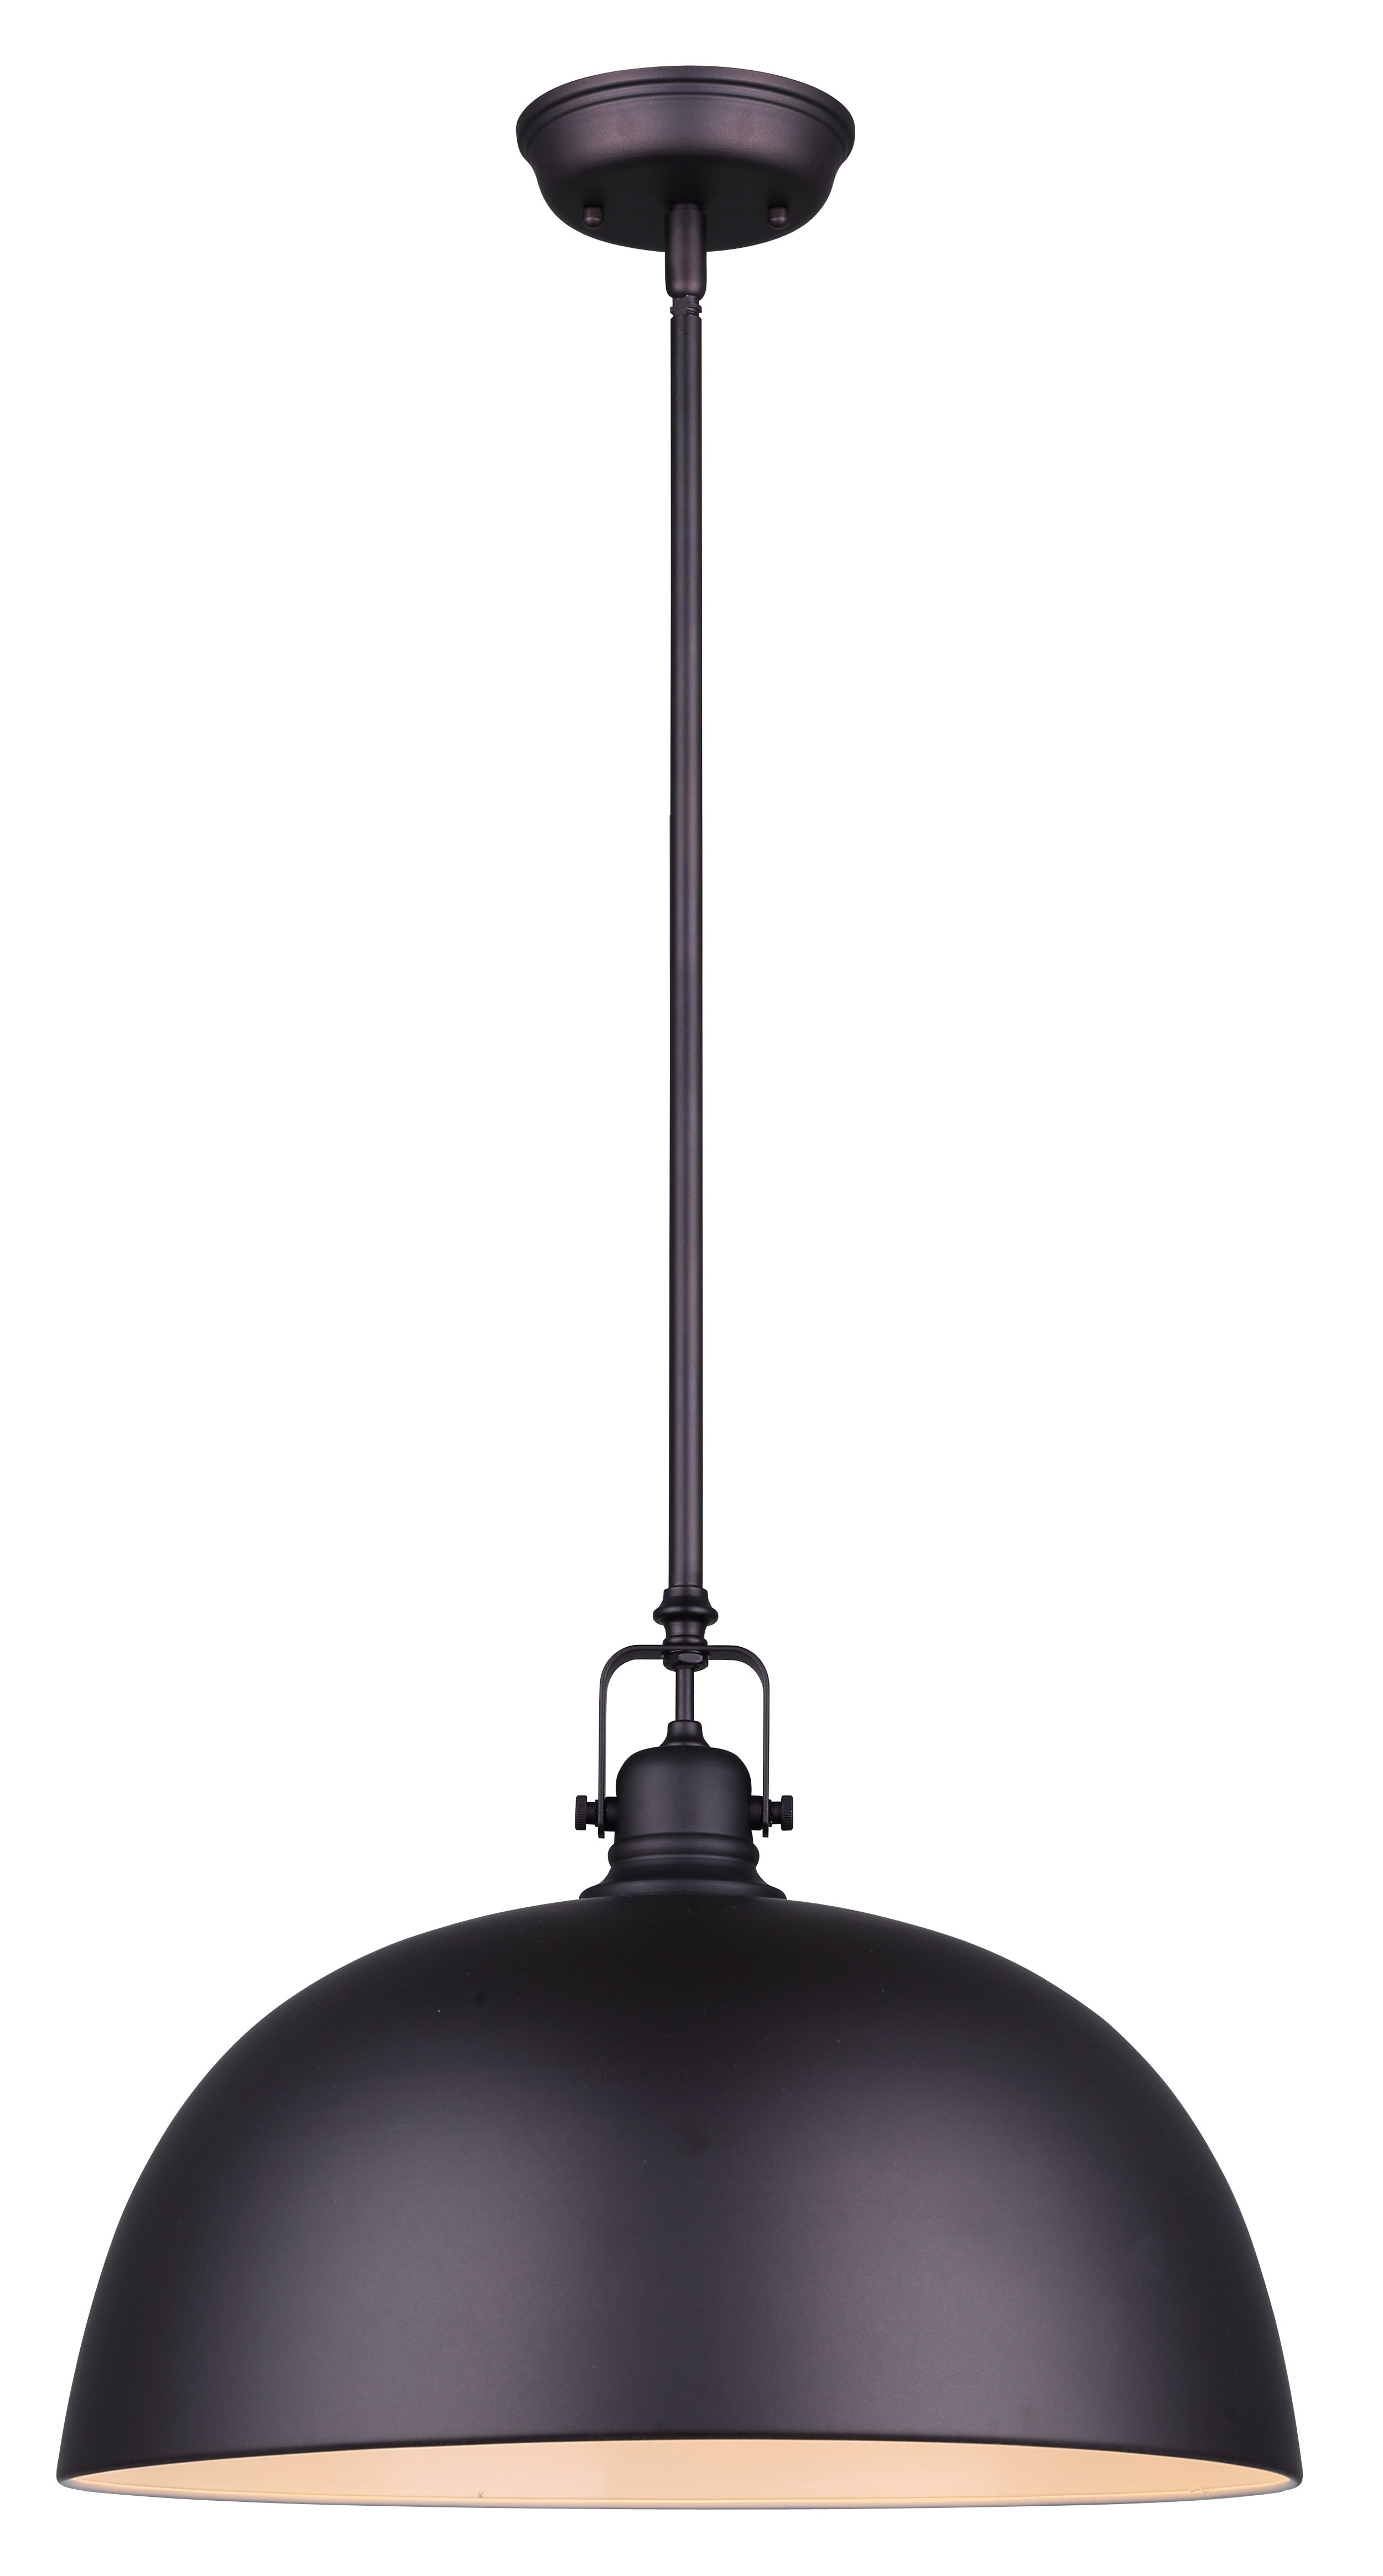 Southlake 1 Light Single Dome Pendant For Most Current Bodalla 1 Light Single Bell Pendants (View 19 of 20)